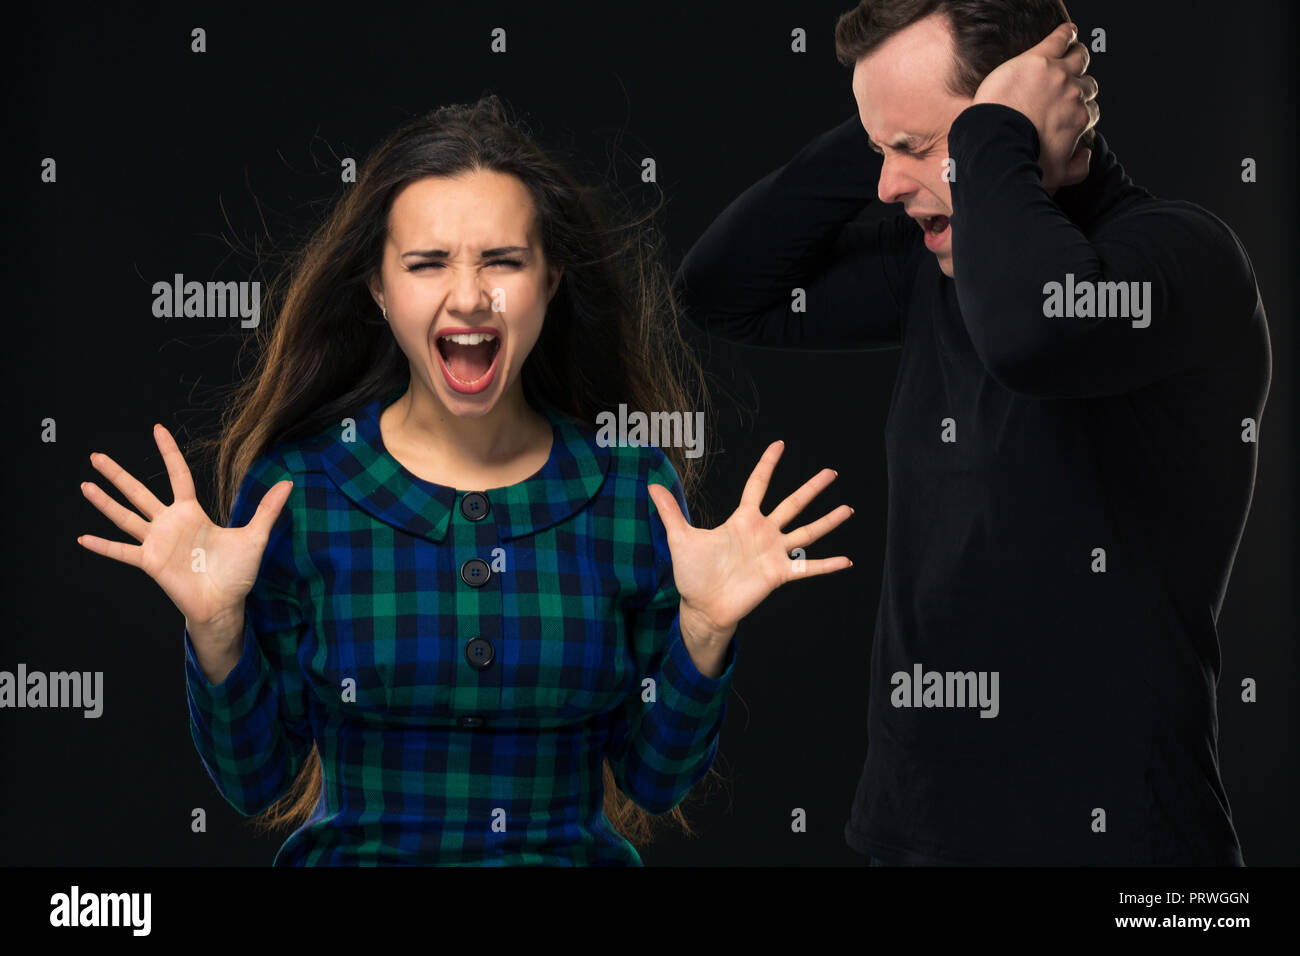 ouple having conflict, bad relationships. Angry fury woman screaming man closing his ears. - Stock Image